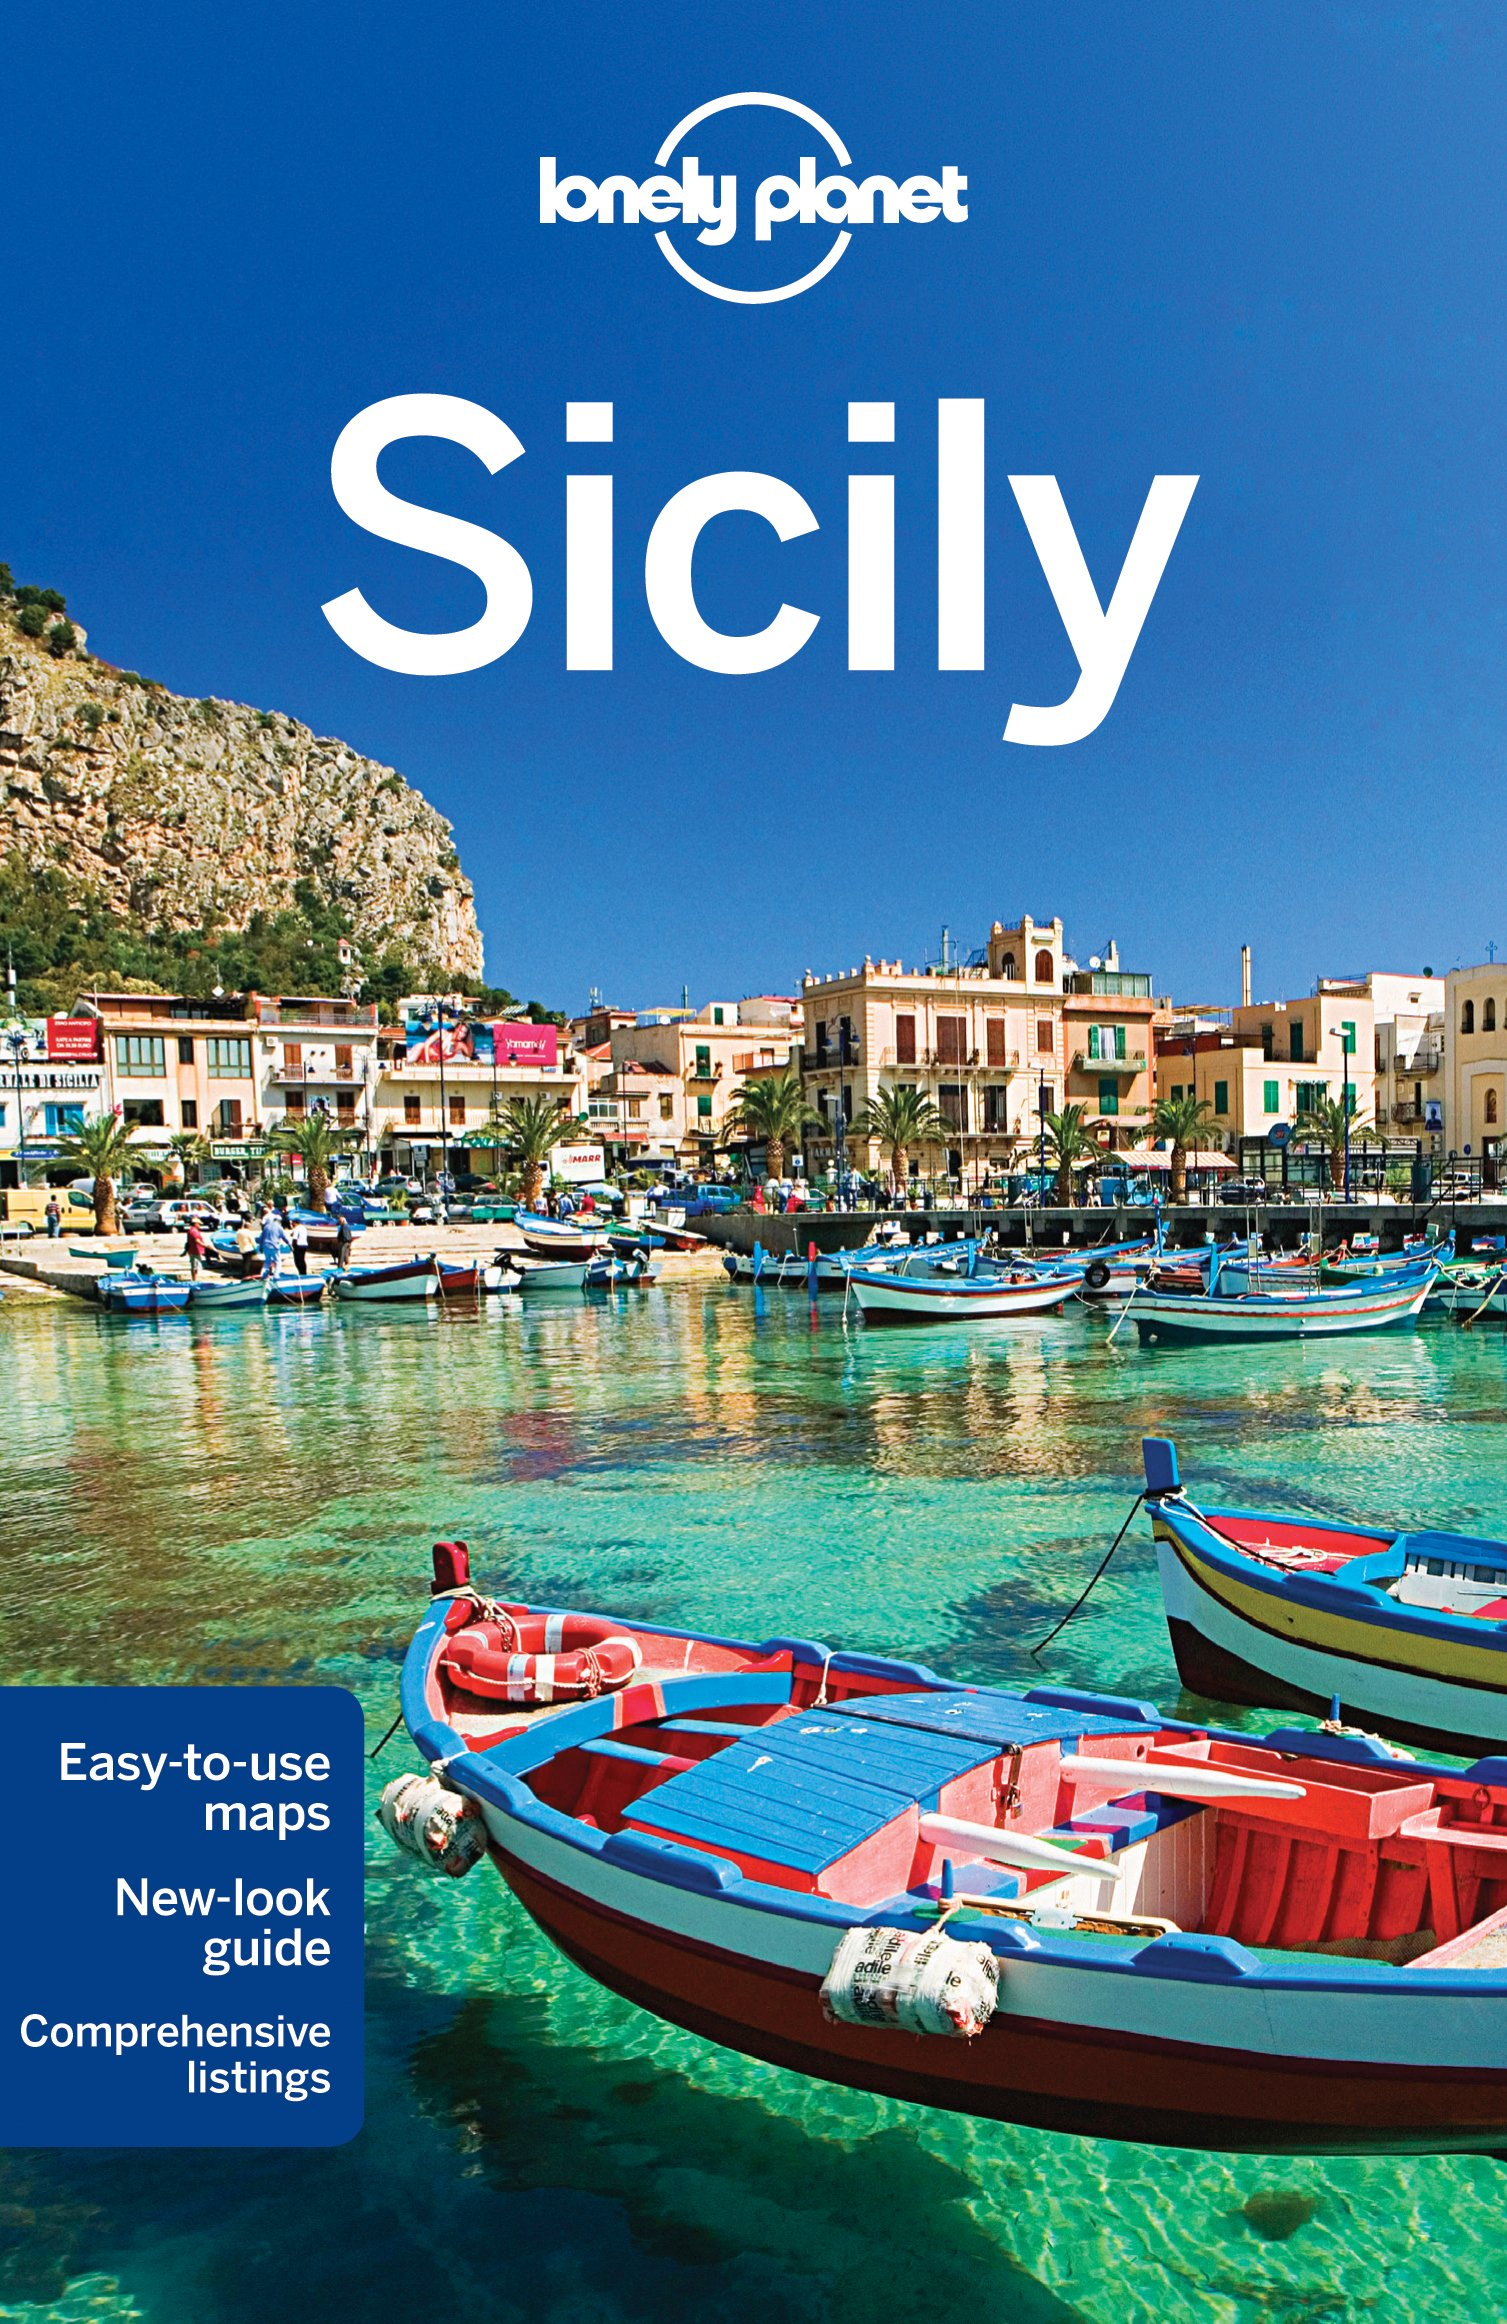 Reisgids Lonely Planet Sicily - Sicilië   Lonely Planet